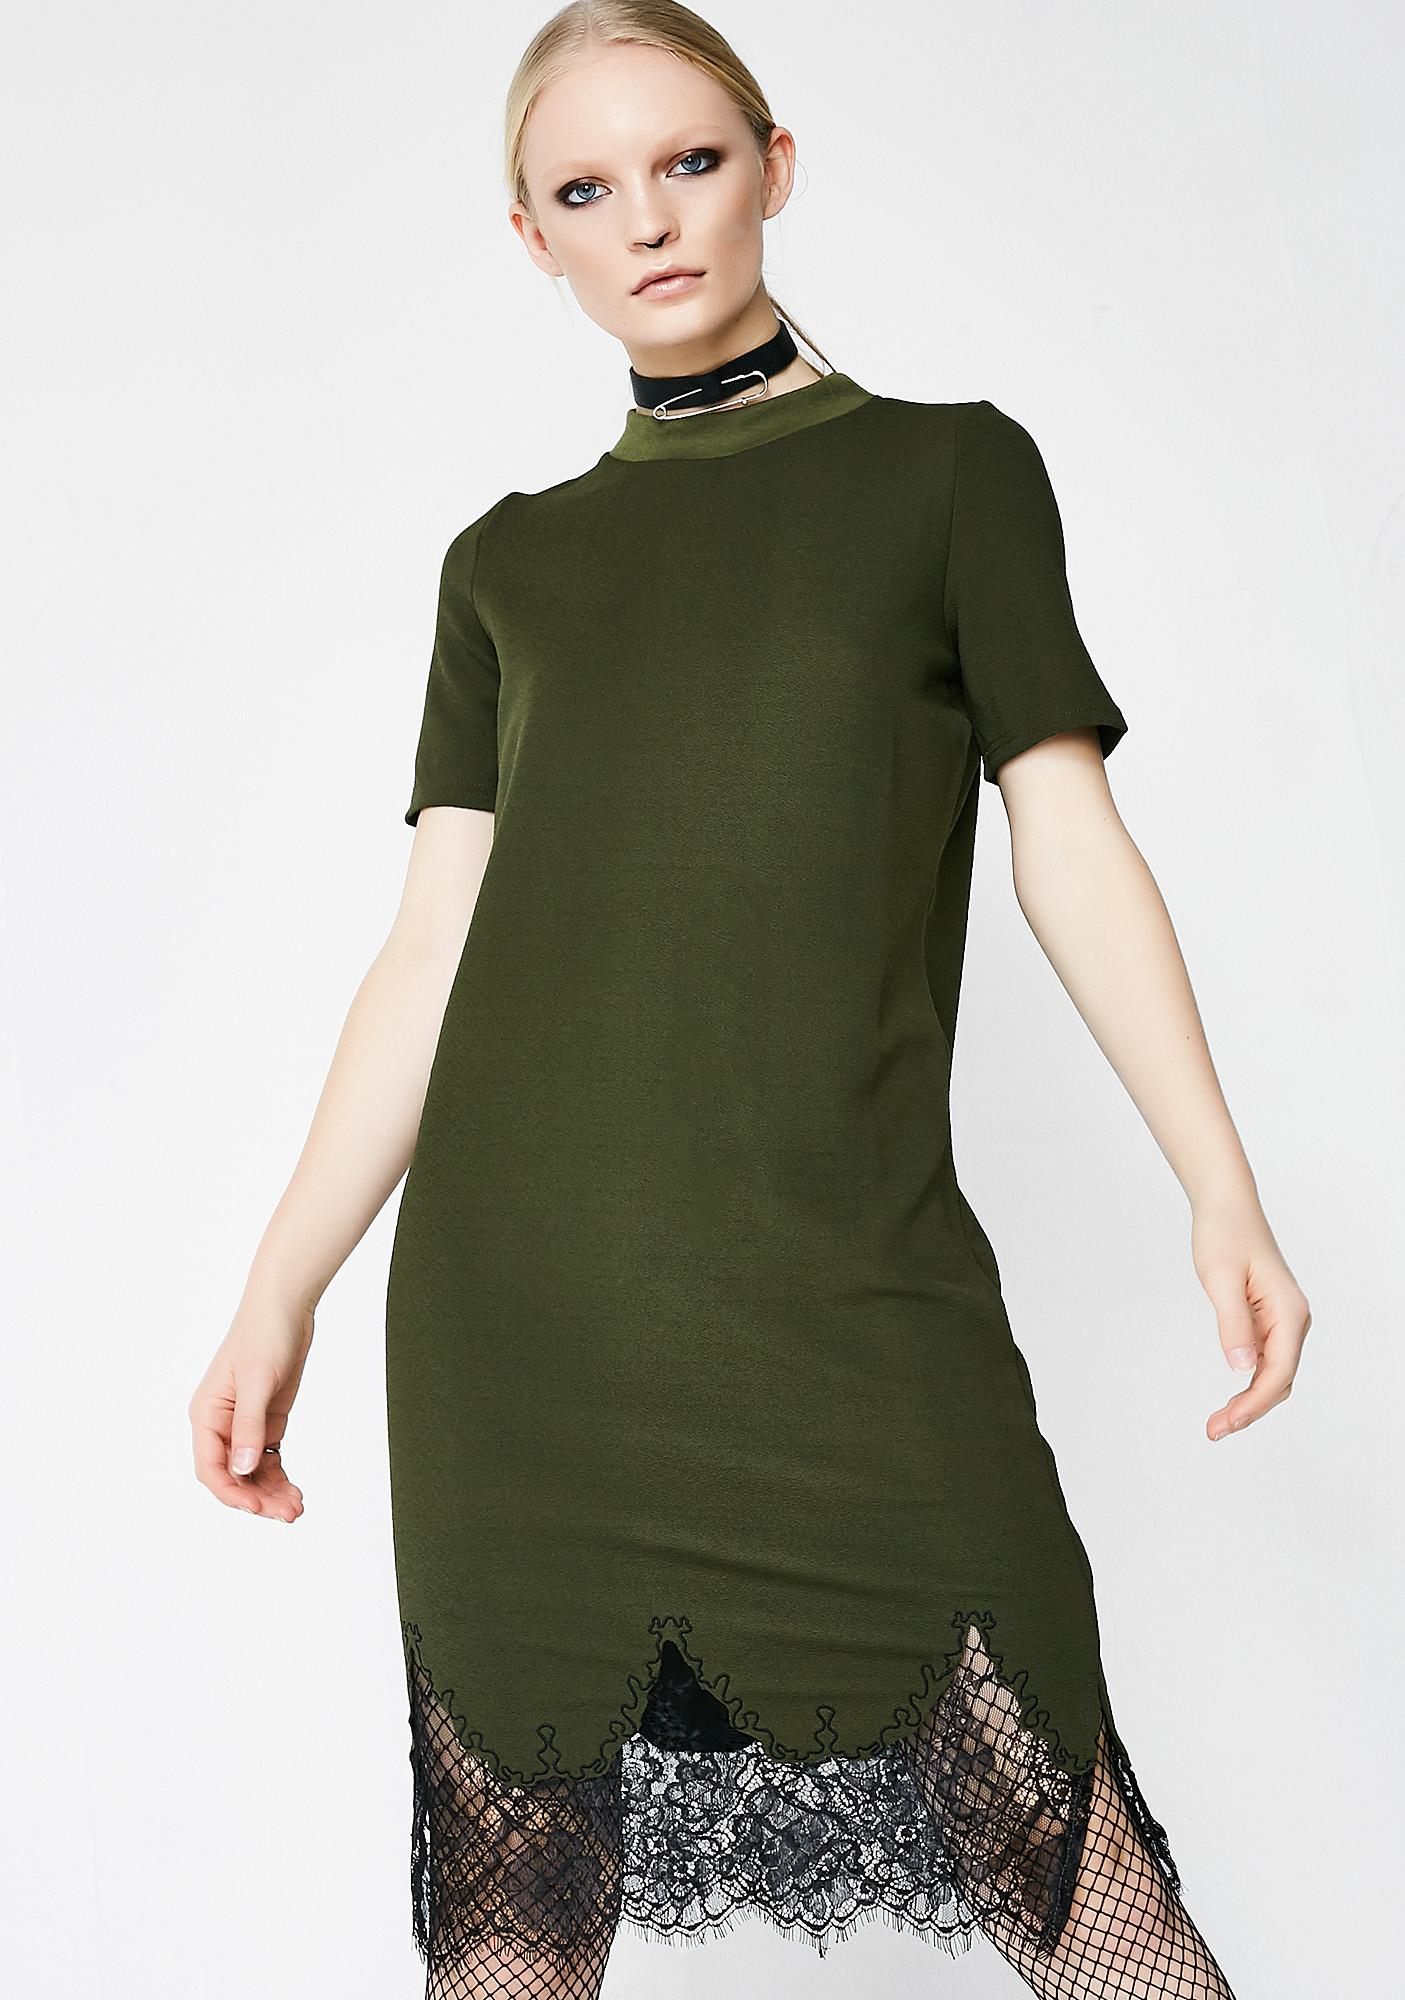 Lira Clothing Radford Dress